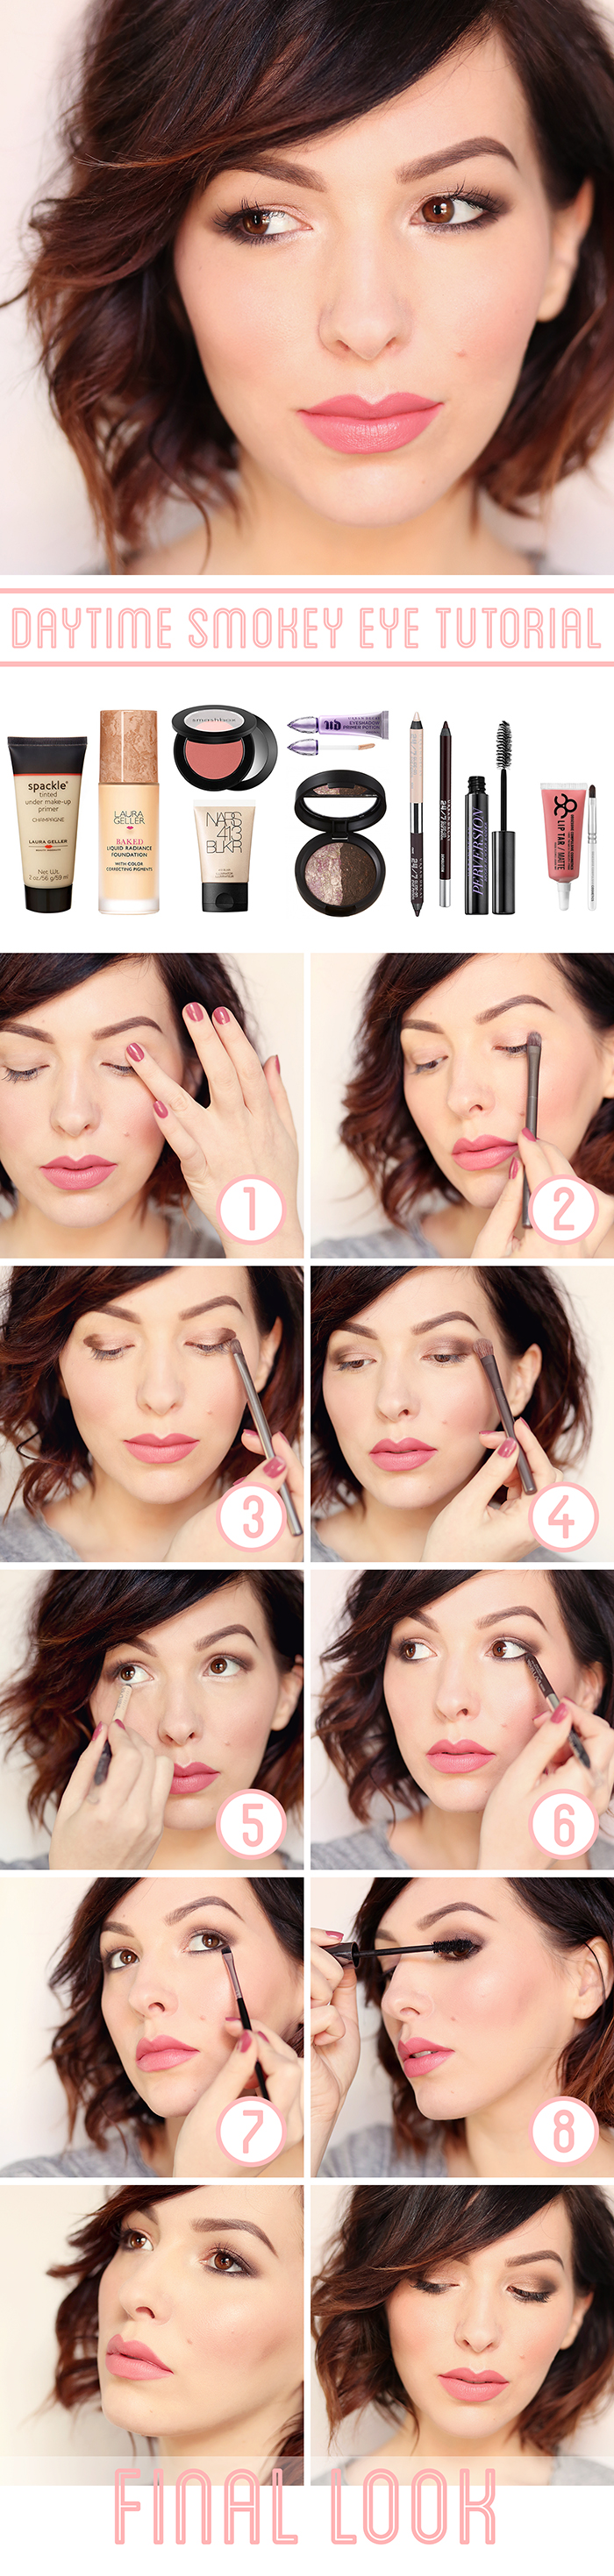 Daytime Smokey Eye Tutorial